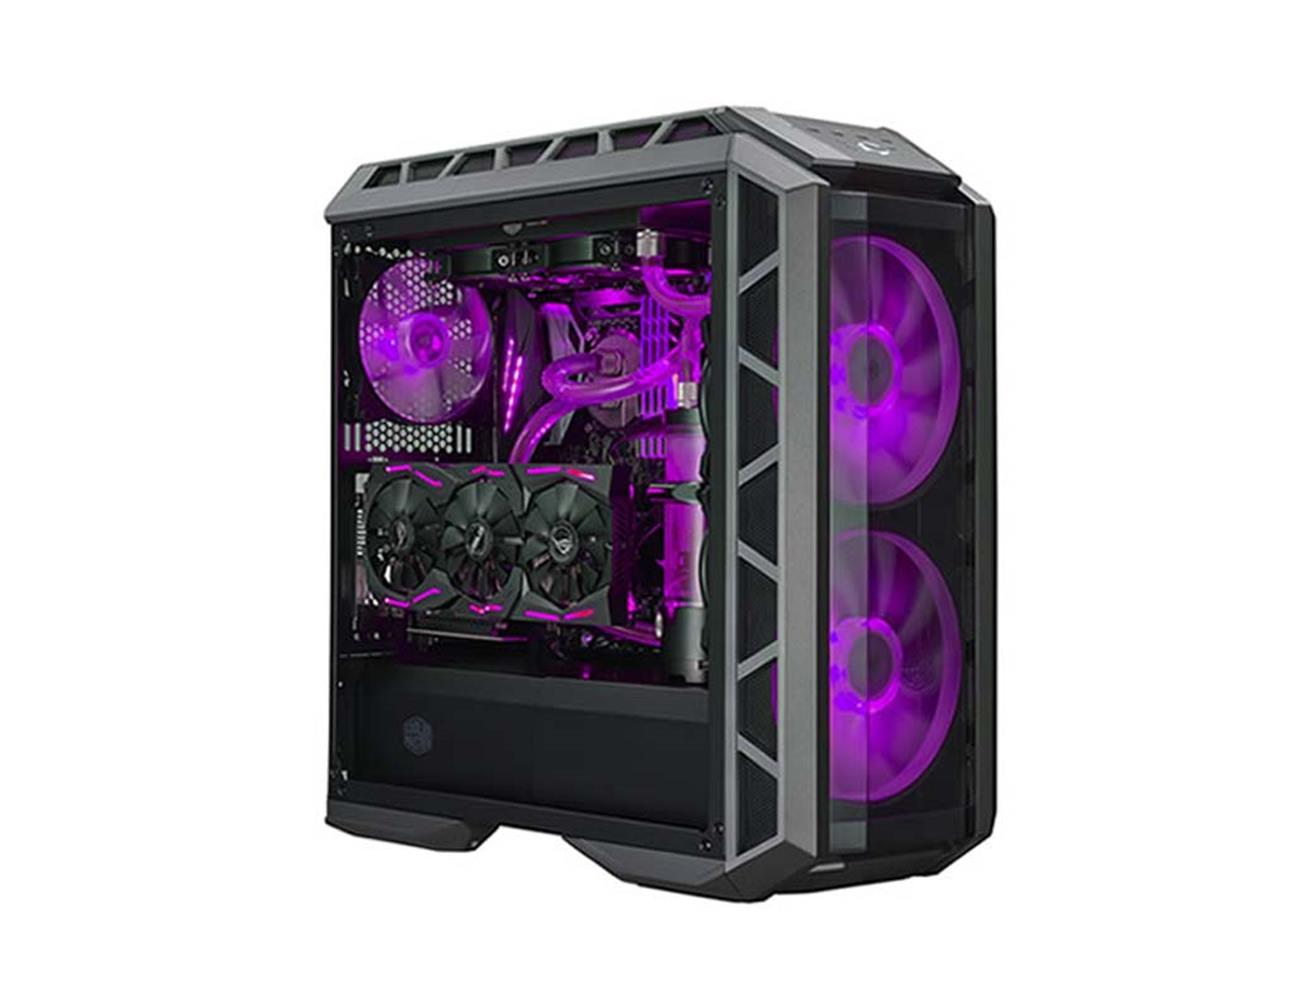 Game On Extreme Gaming Pc Intel Core I7 7800x 3 5 4 0ghz 16gb Ram